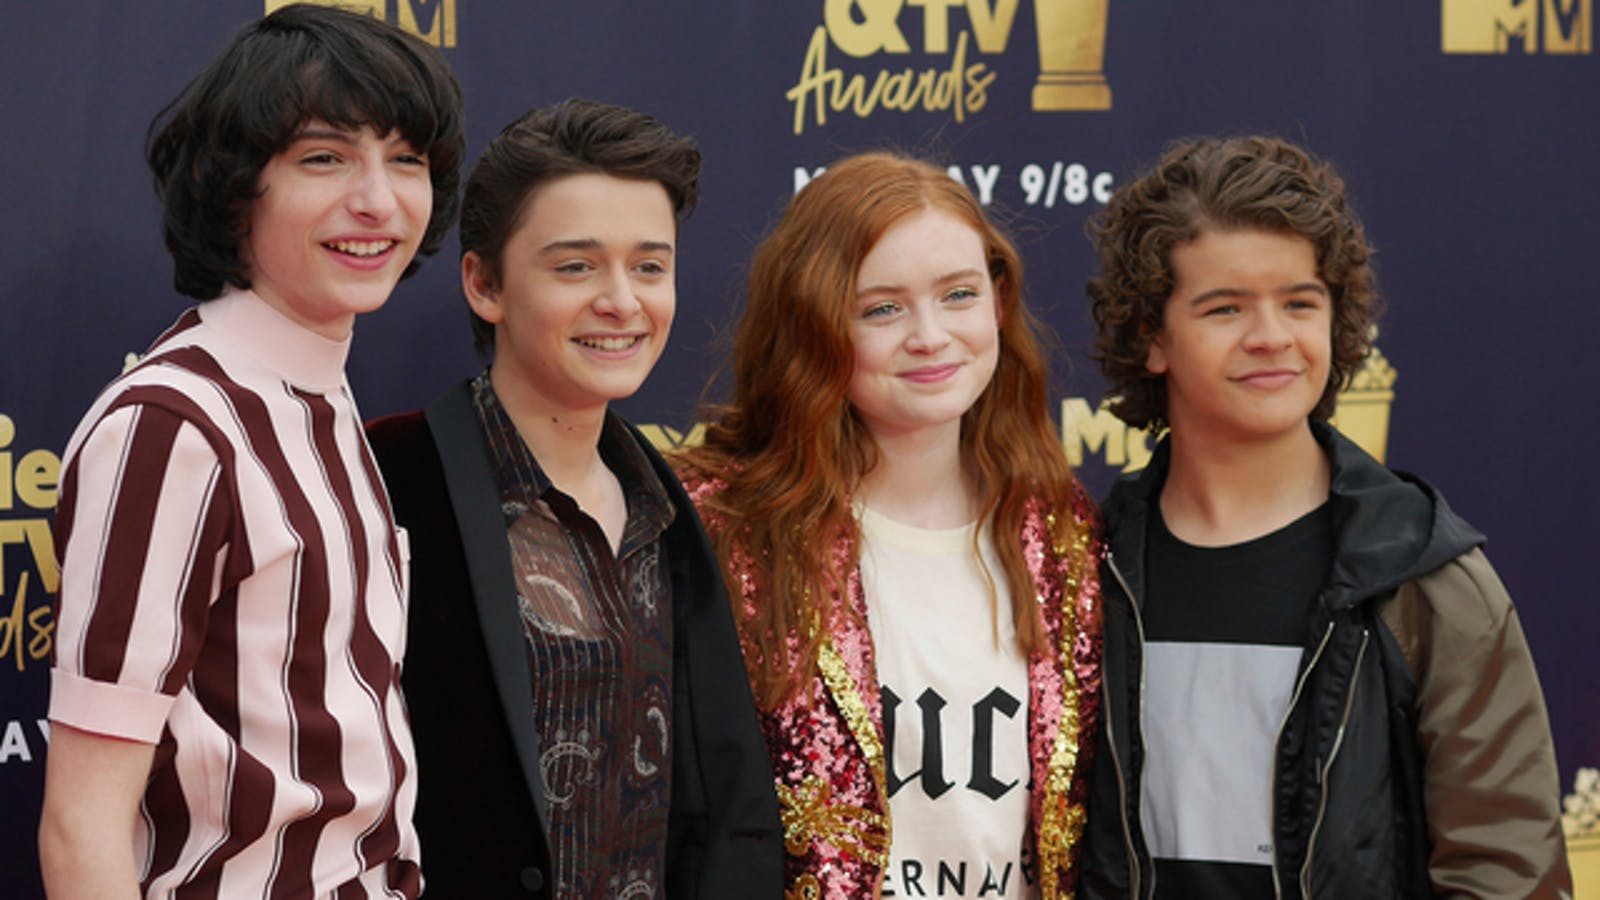 """Cast members from Netflix's """"Stranger Things"""" at an awards show last month. Photo: AP"""